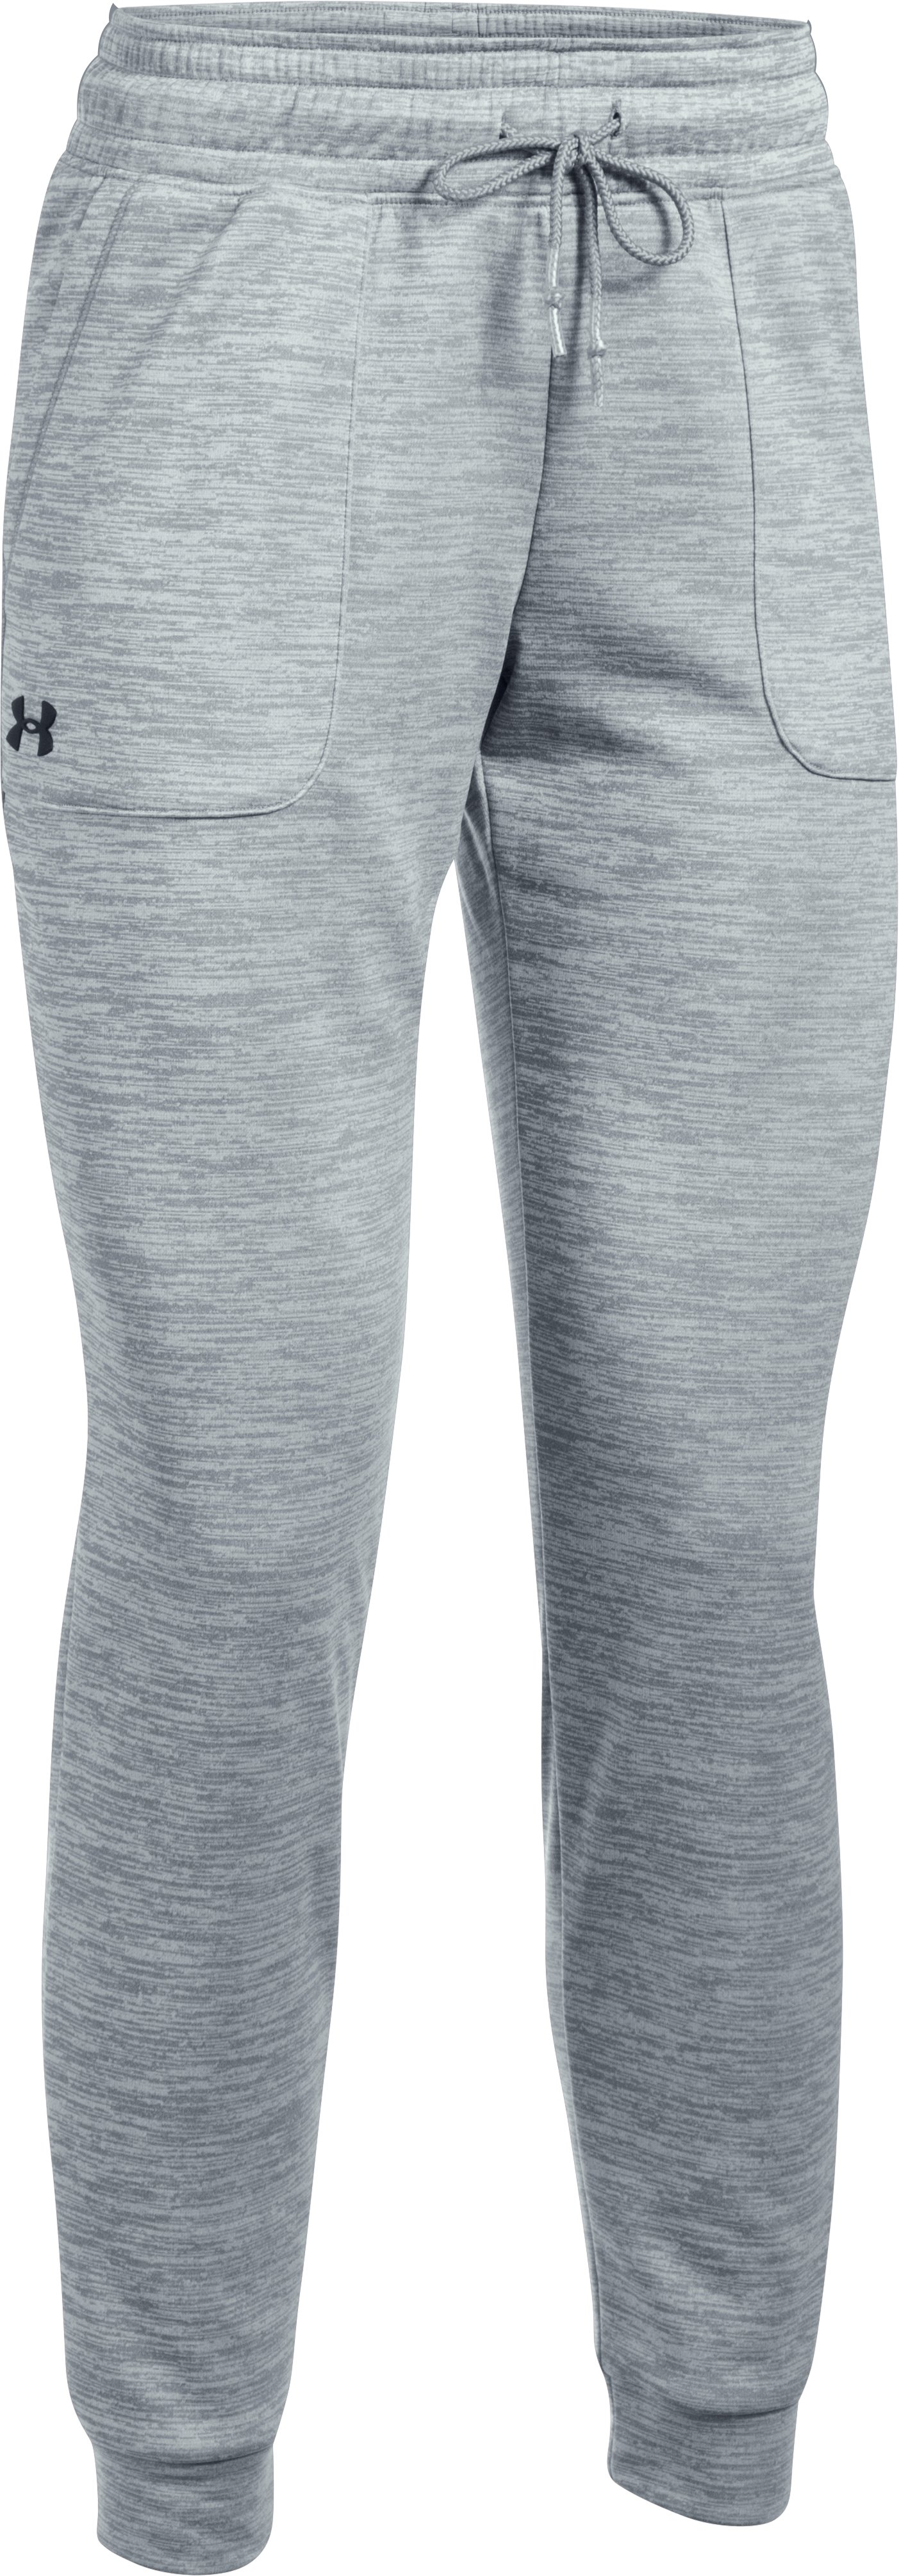 Women's UA Storm Armour® Fleece Lightweight Joggers - Twist, Steel